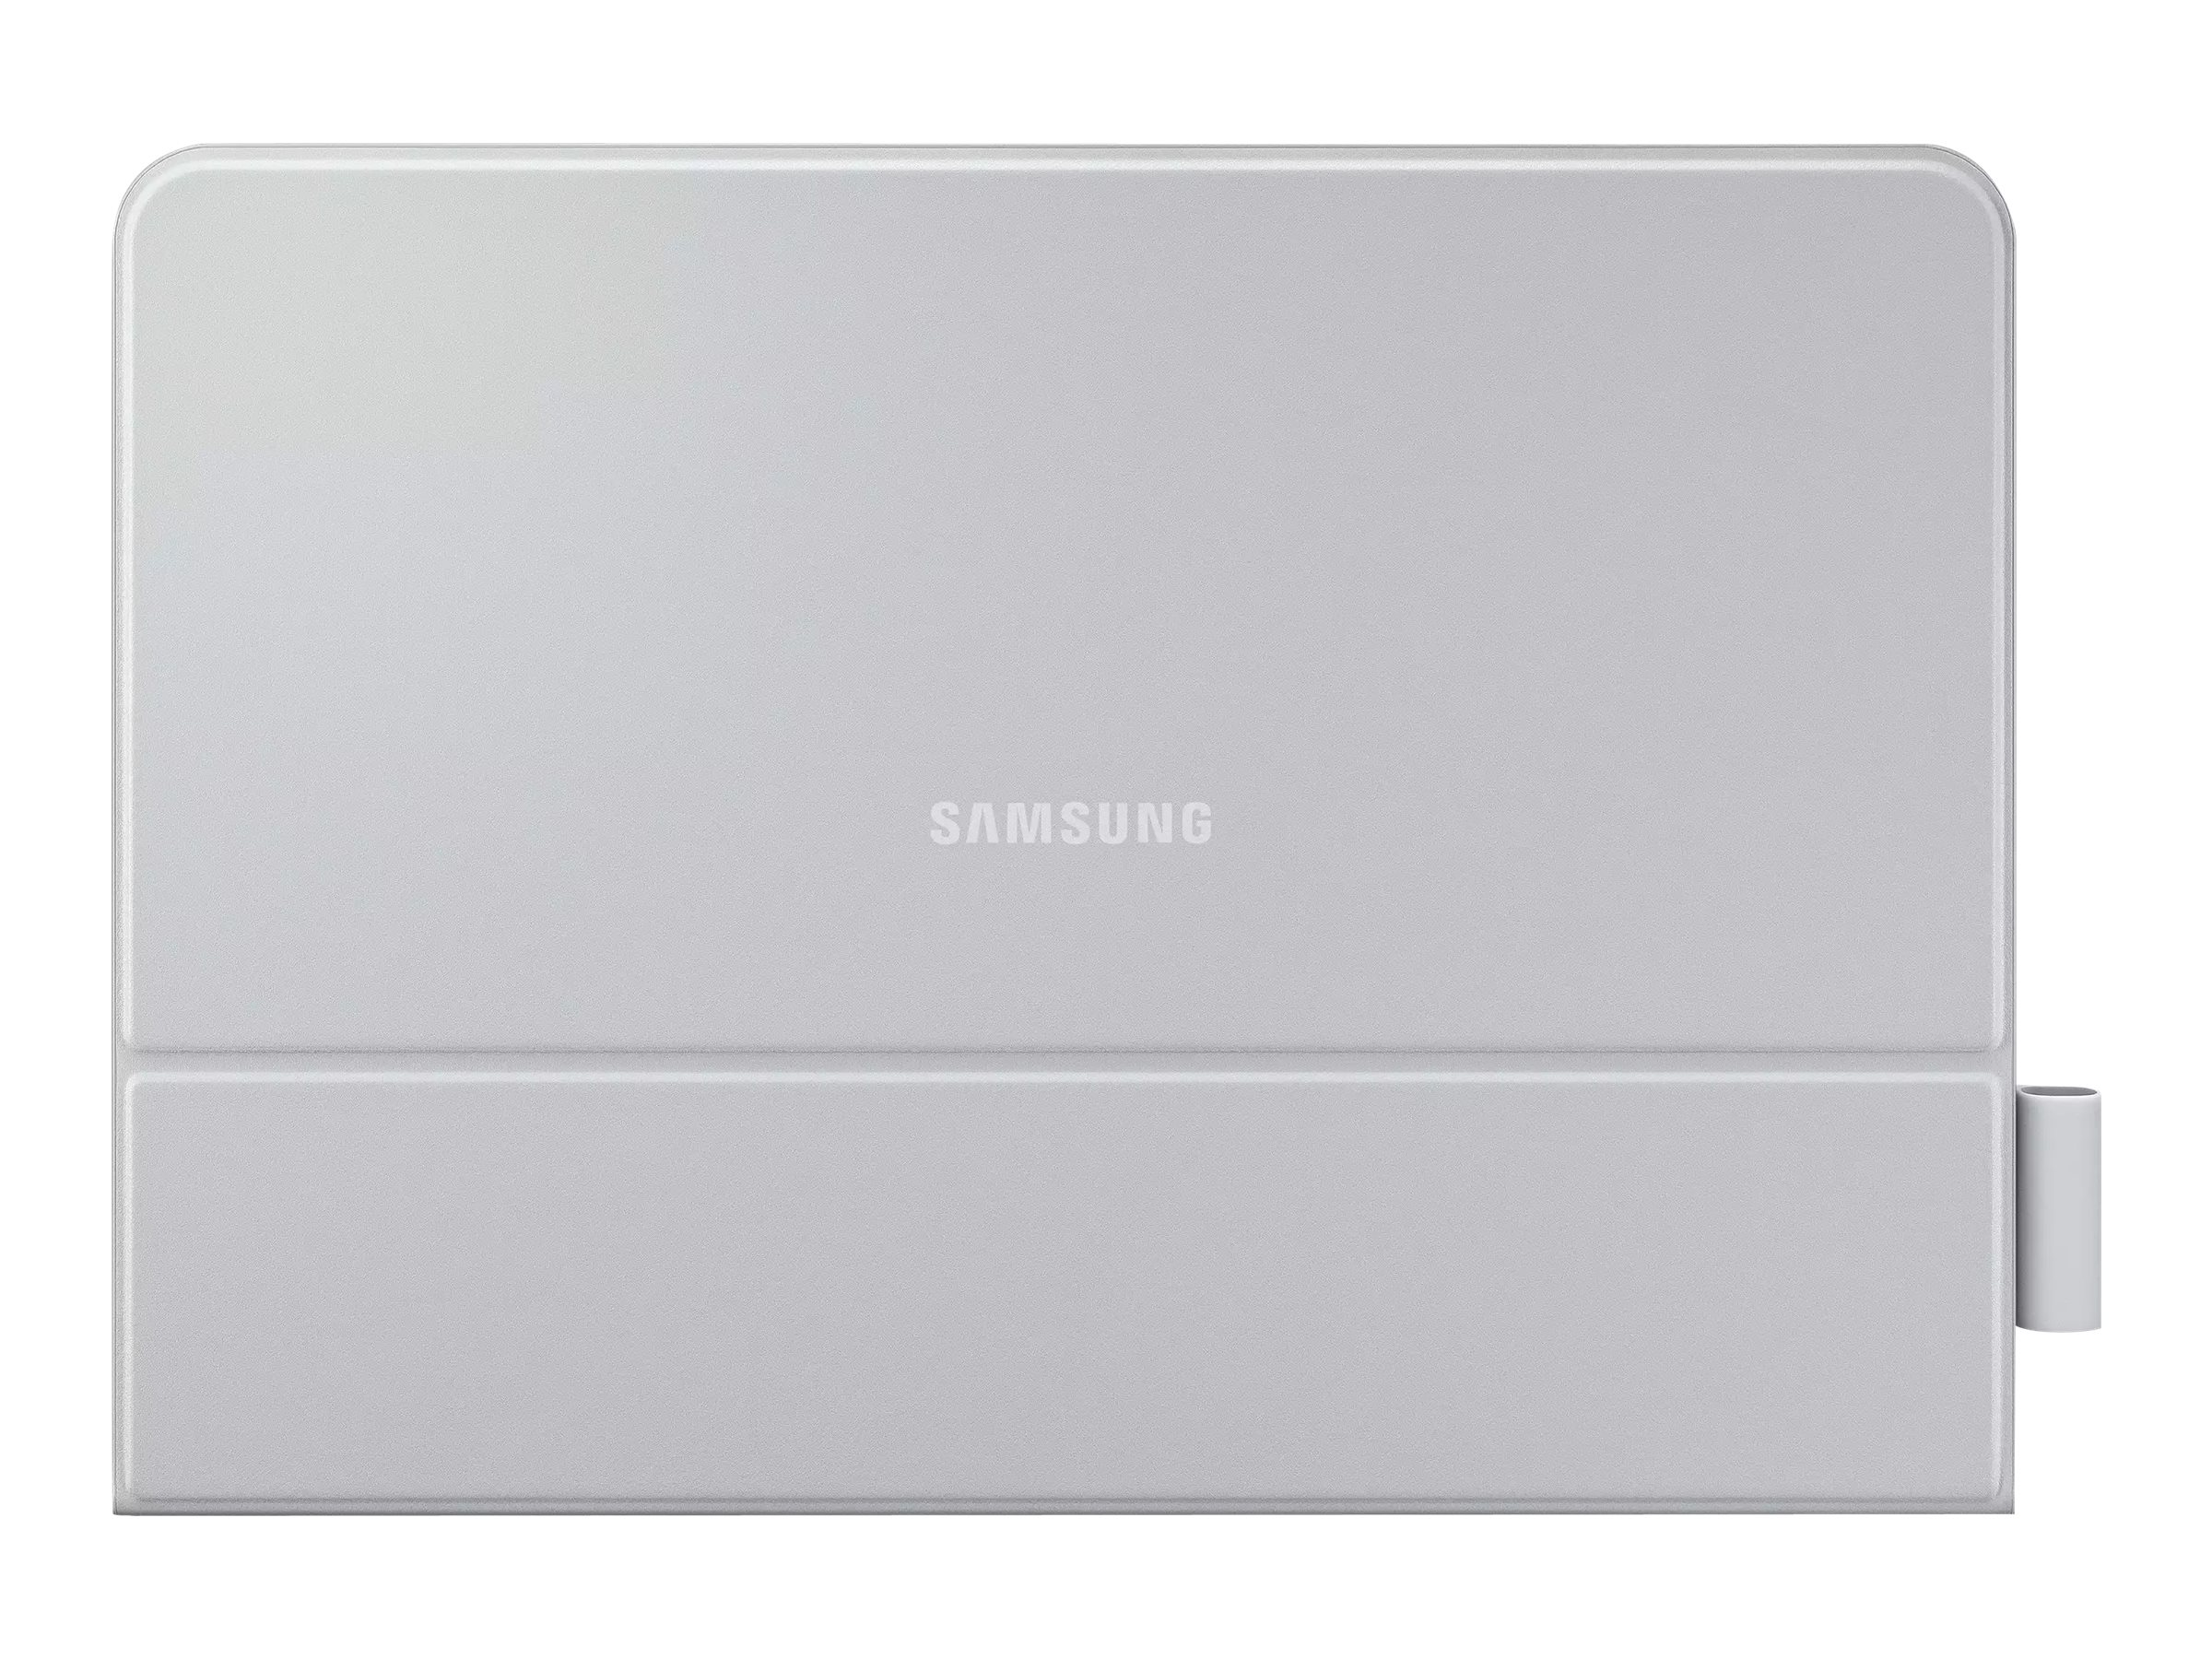 Image for Samsung Keyboard Cover Ej-Ft820 - Keyboard And Folio Case from Circuit City